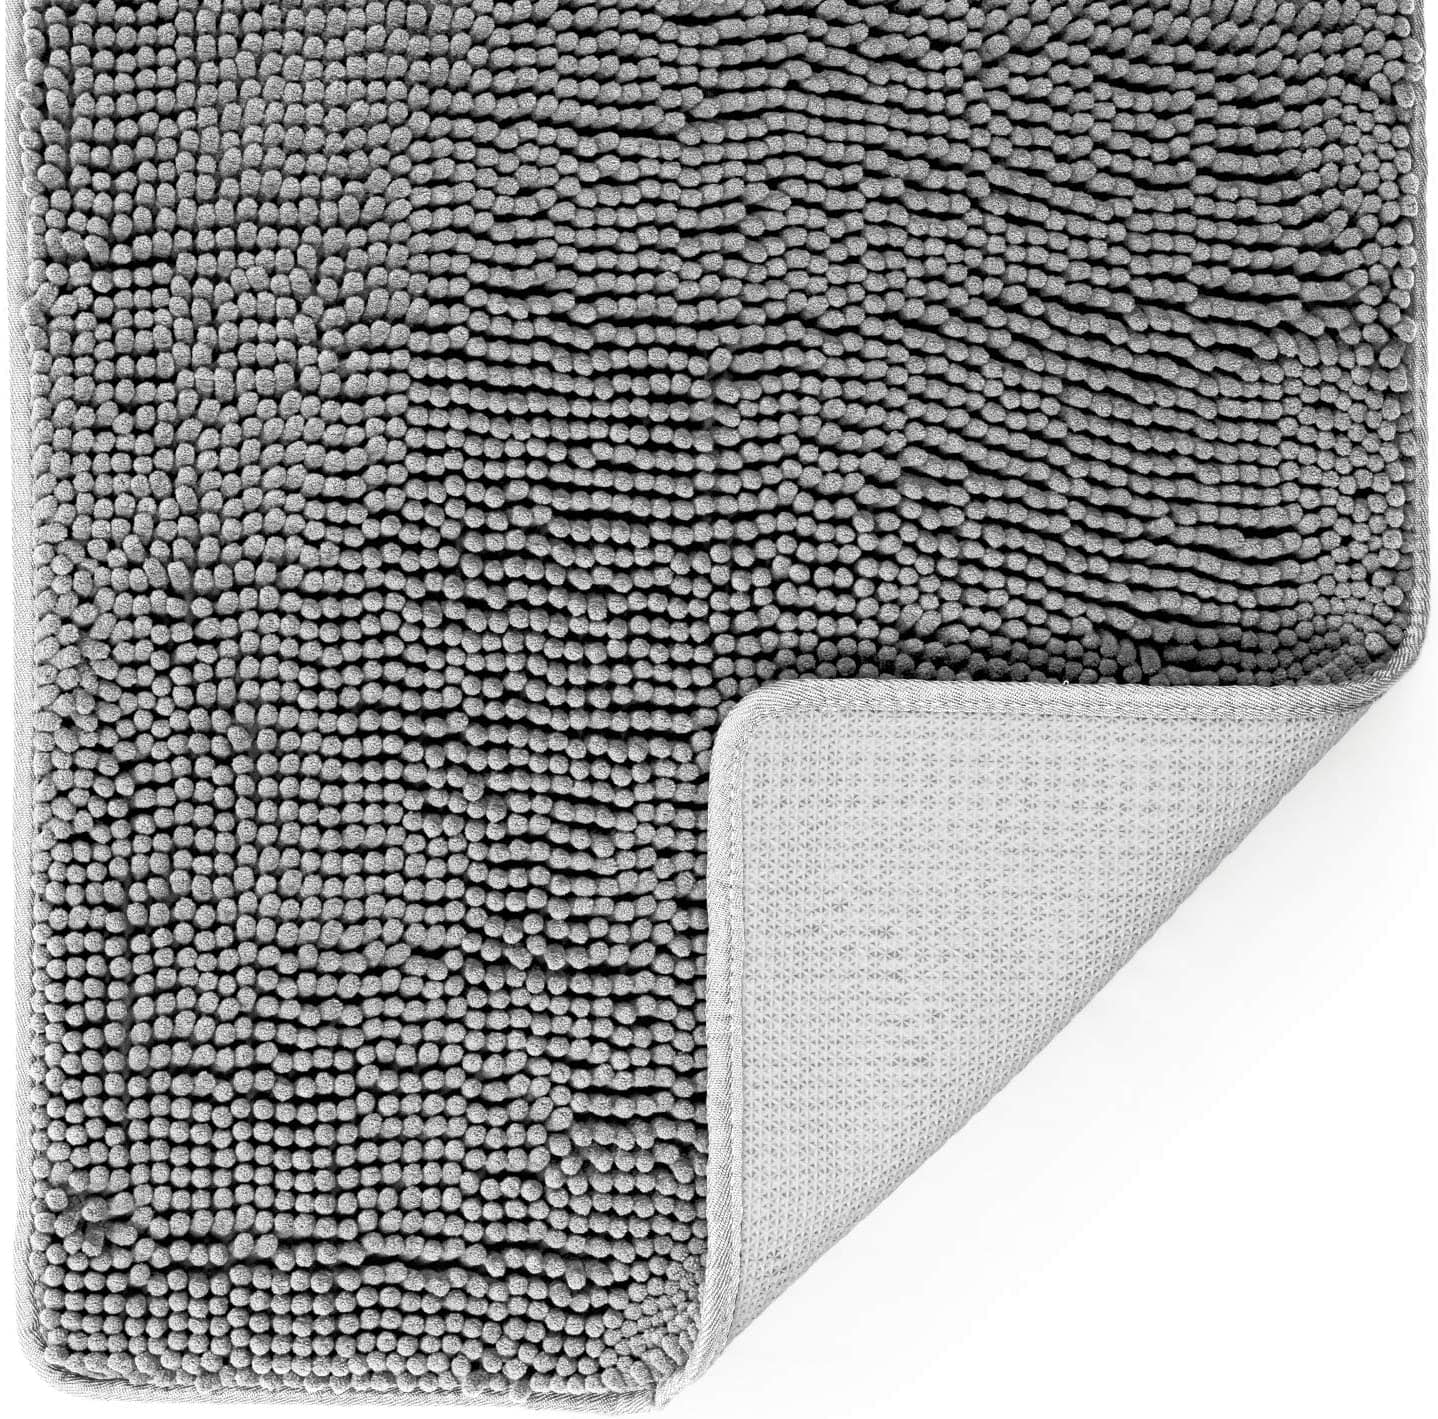 Tafts Luxury Chenille Bathroom Rugs (21x32in All Colors) - 40% off $13.19